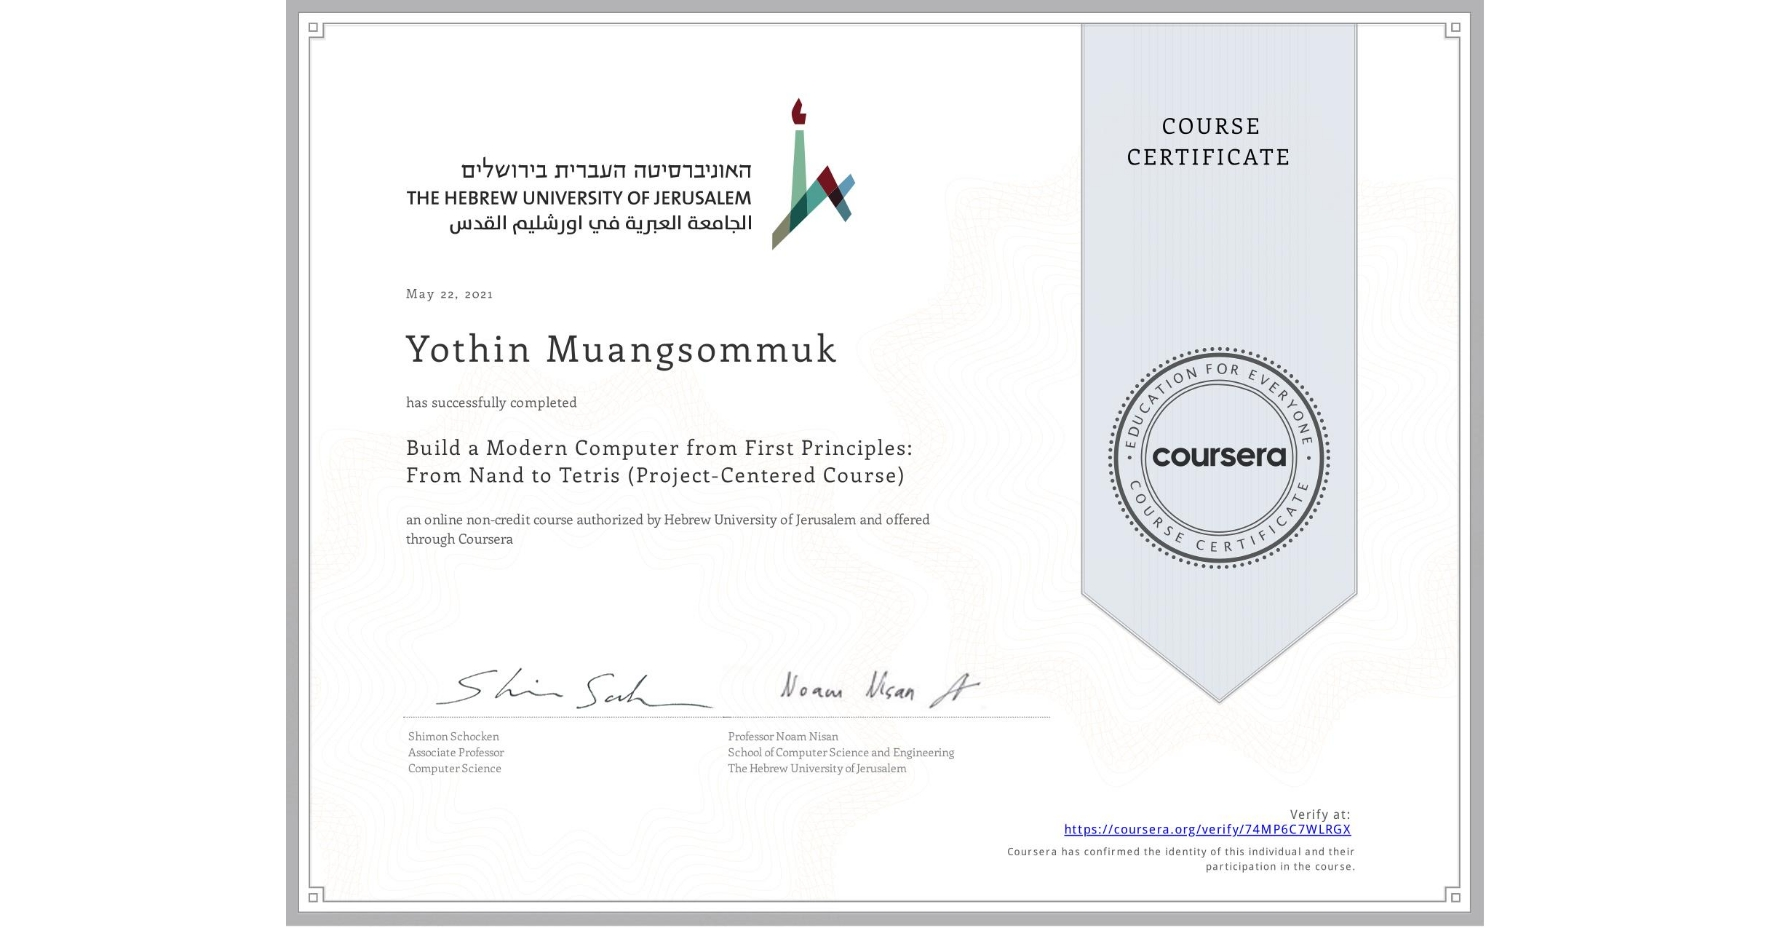 View certificate for Yothin Muangsommuk, Build a Modern Computer from First Principles: From Nand to Tetris (Project-Centered Course), an online non-credit course authorized by Hebrew University of Jerusalem and offered through Coursera